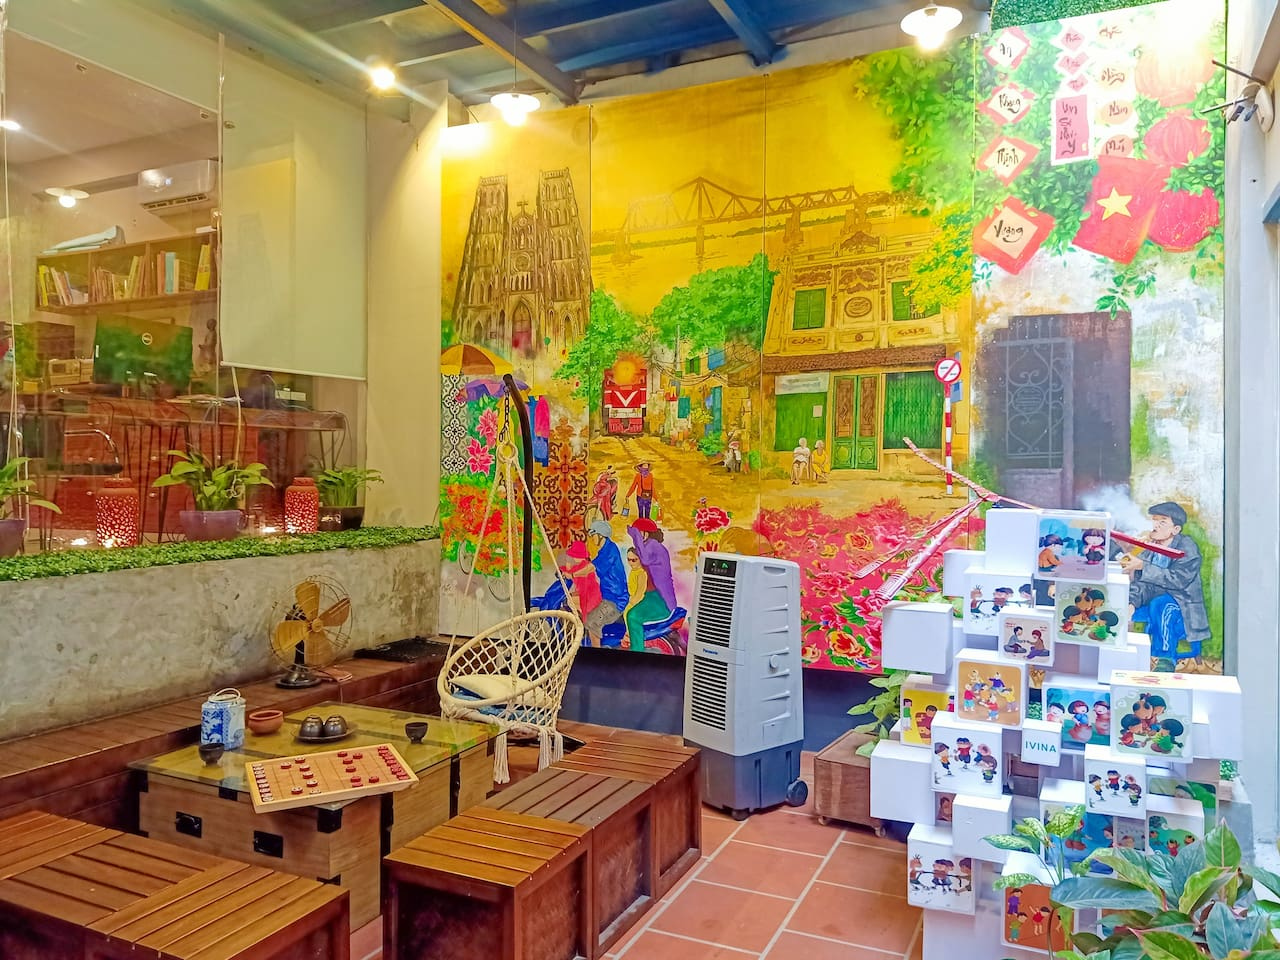 A more-than-a-Hostel, packaged with accommodation, work and experiences